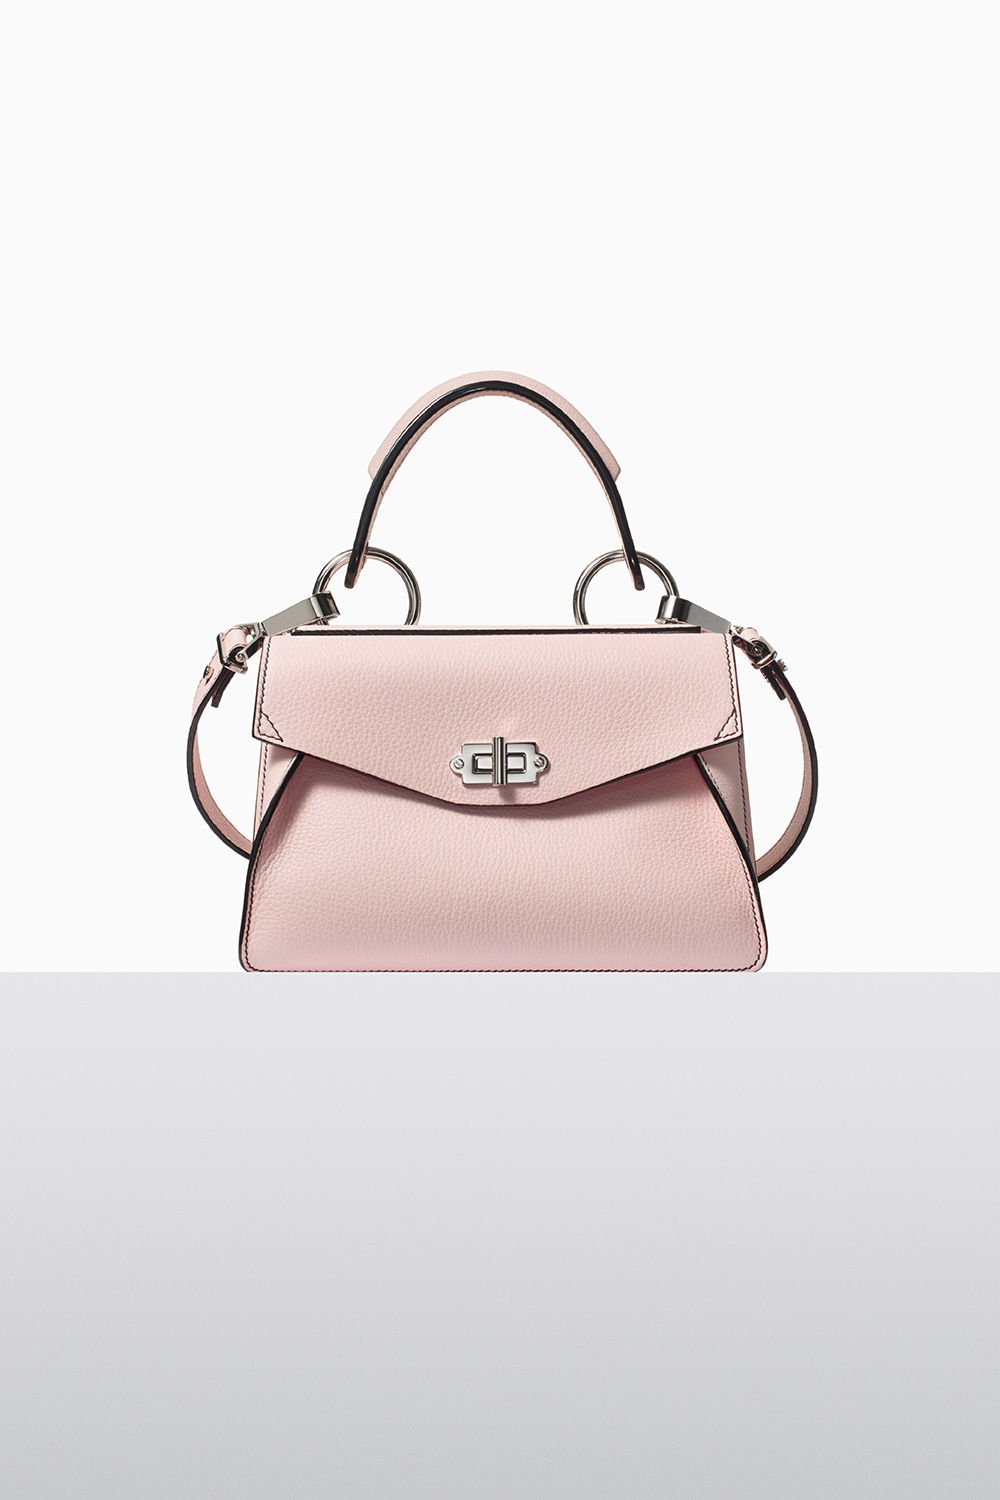 proenza schouler fall 2017 rose quartz lindos small hava top handle bag